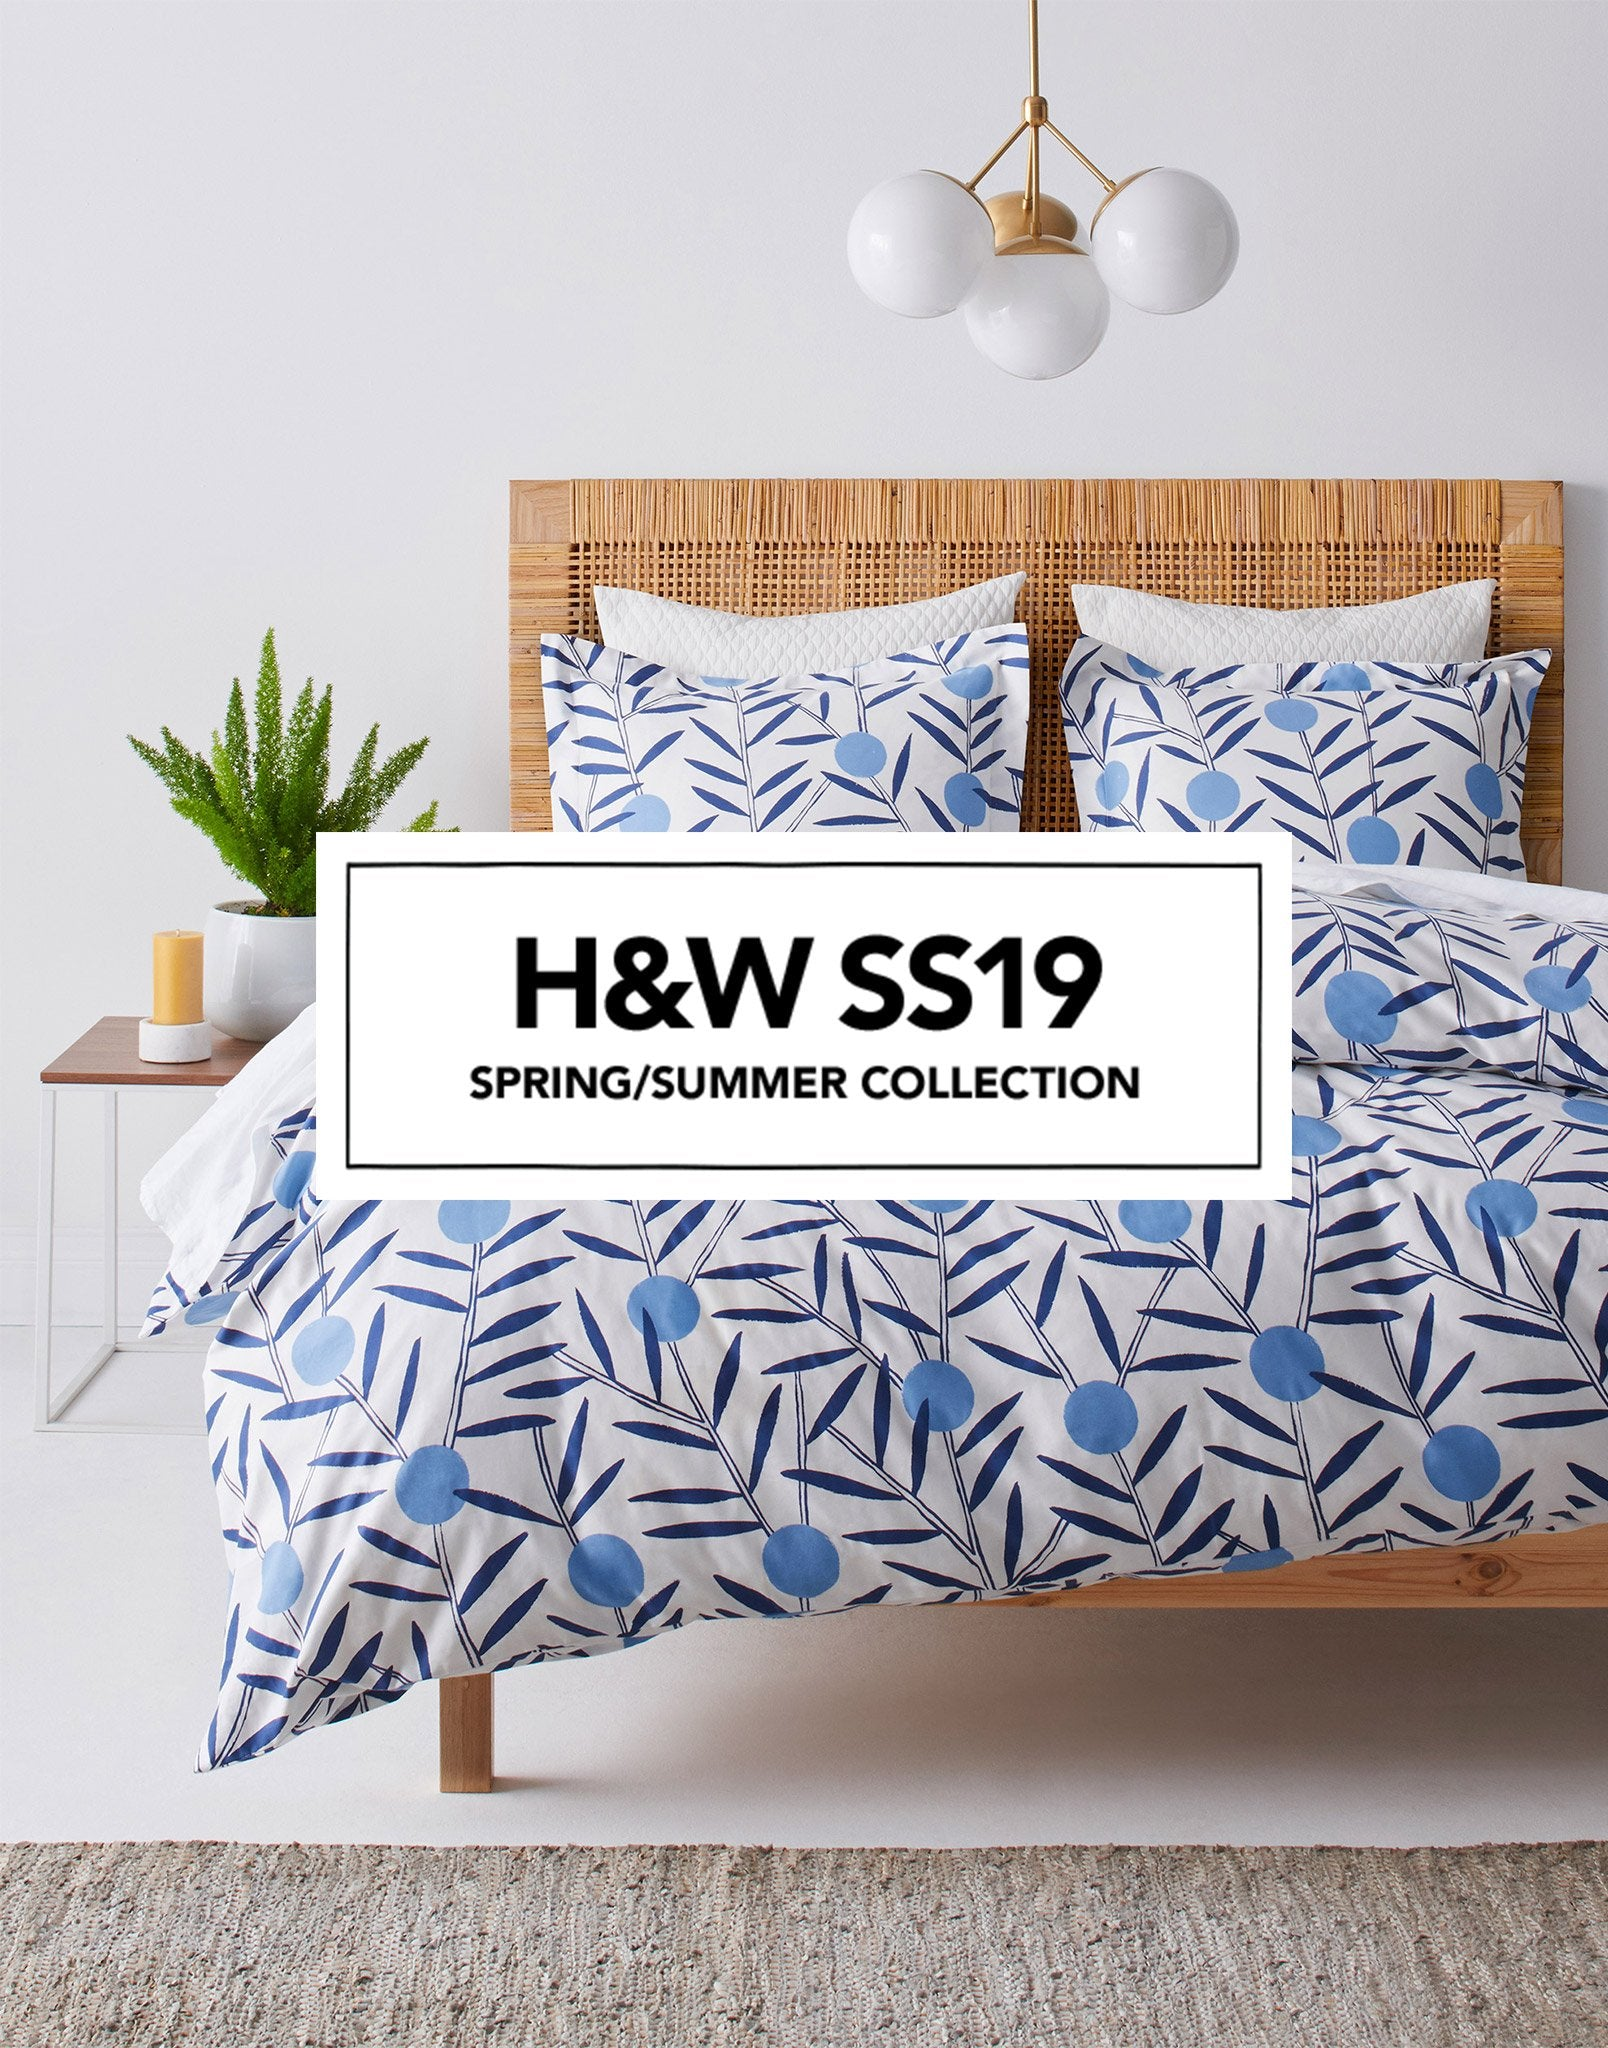 Spring/Summer '19 collection | Hygge & West